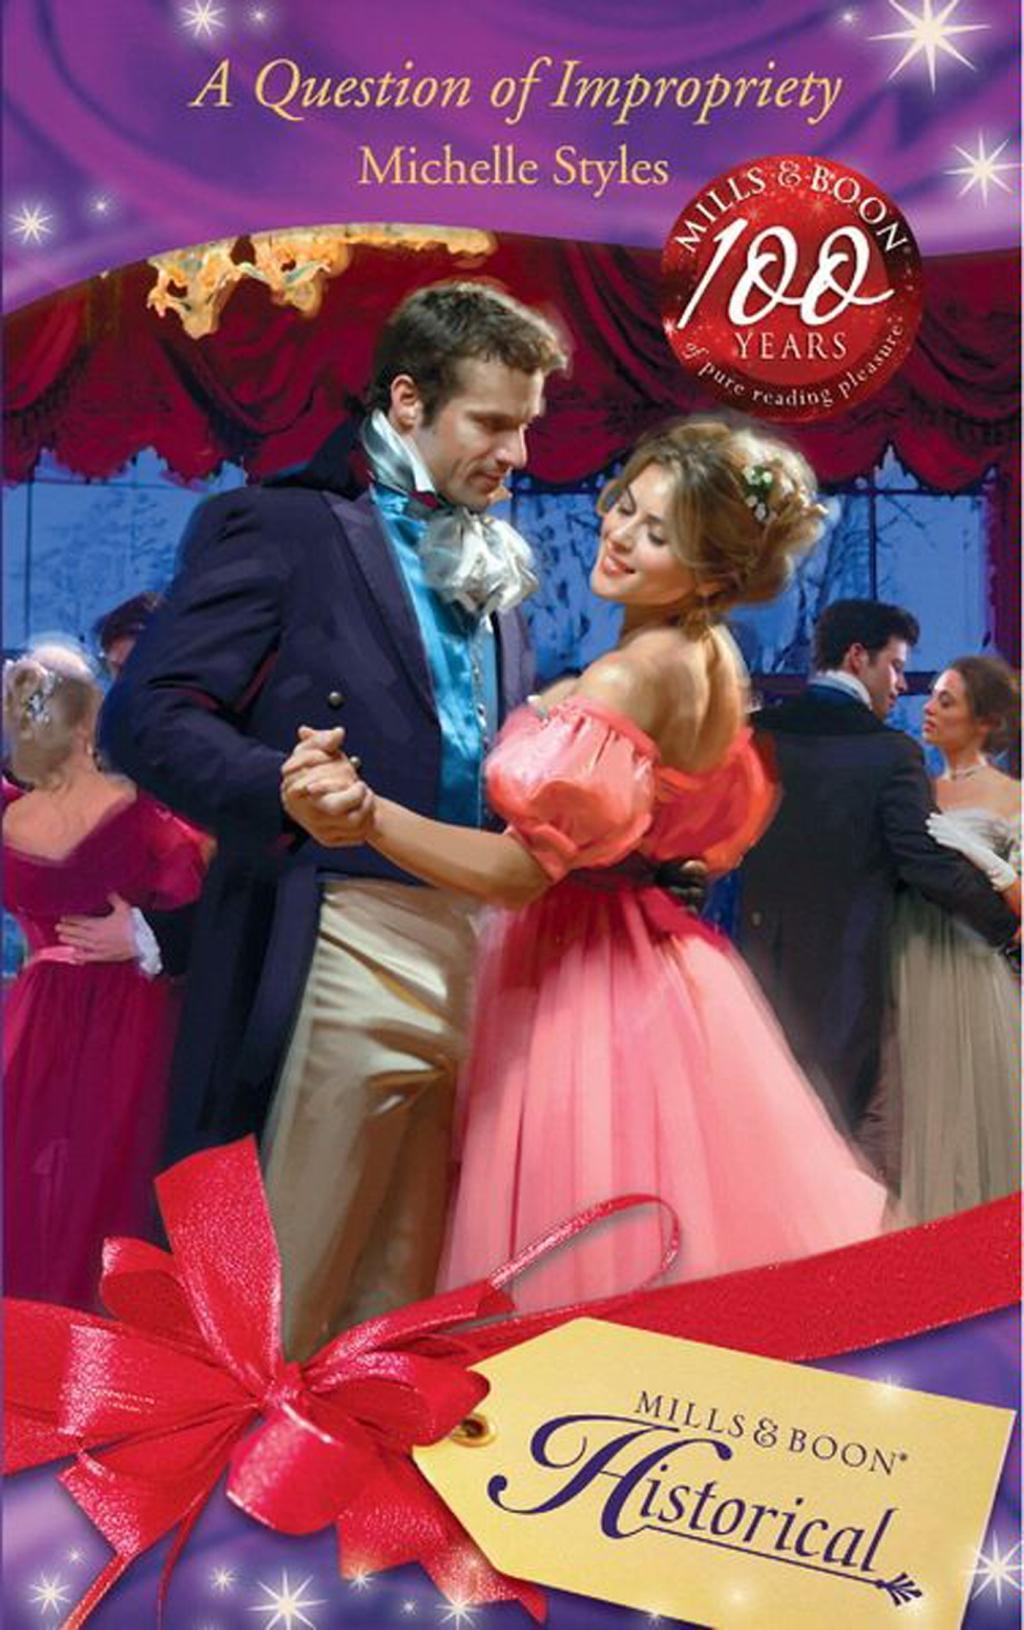 A Question of Impropriety (Mills & Boon Historical)